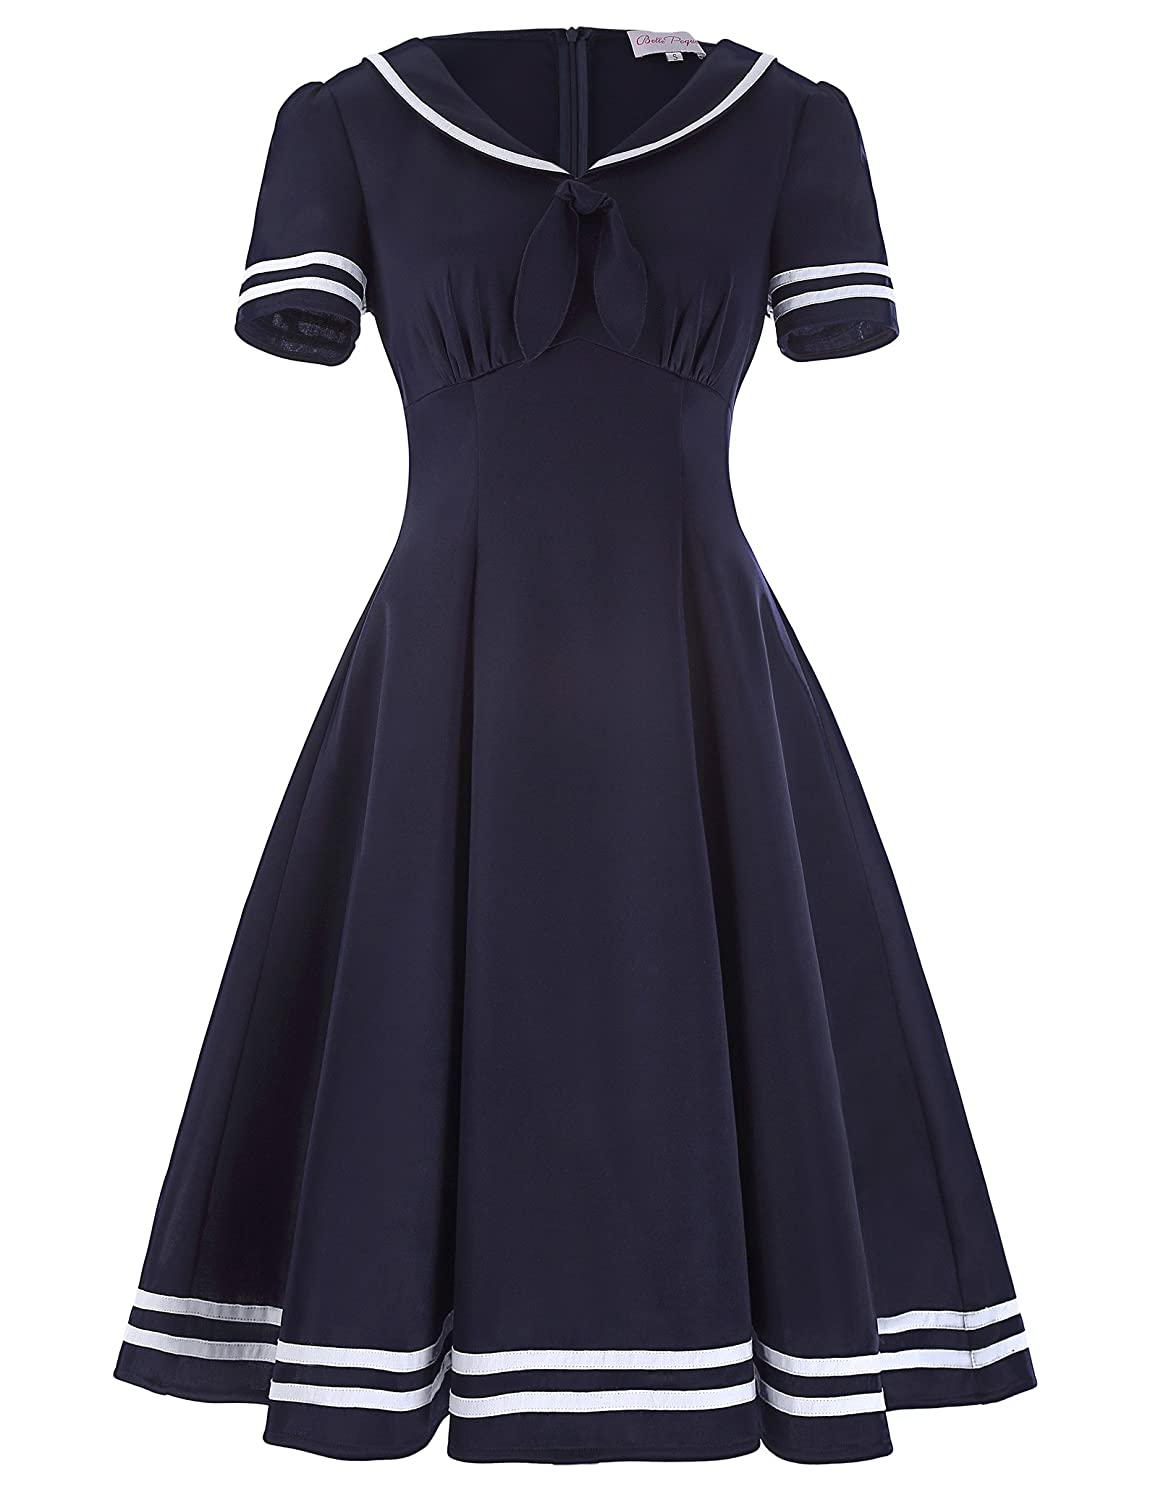 1950s House Dresses and Aprons History Belle Poque Womens Retro Sailor Dress Short Sleeve Cocktail Party Swing Dress $29.99 AT vintagedancer.com